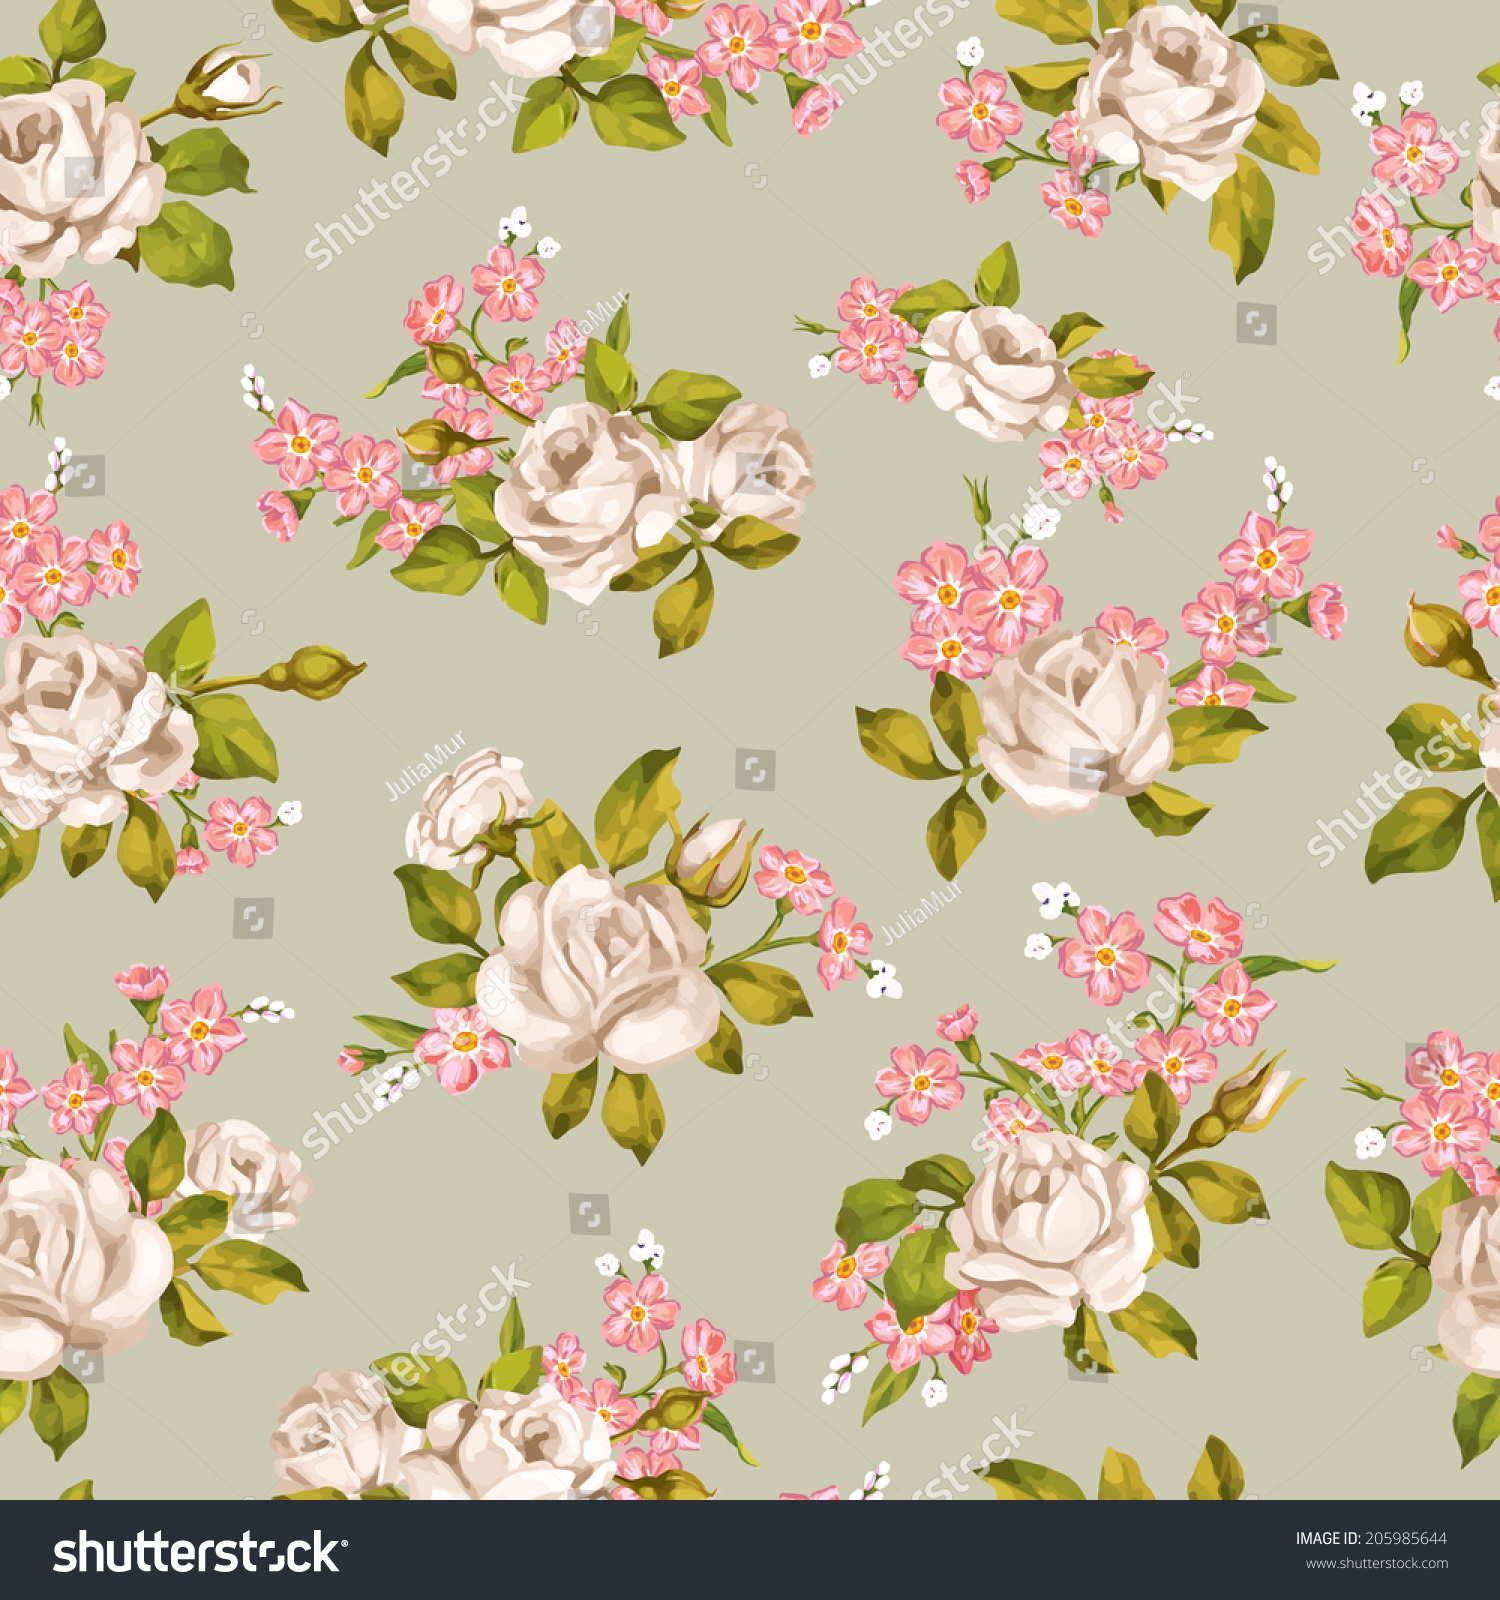 Beautiful Seamless Floral Pattern Flower Vector Illustration Elegance Wallpaper With Of Roses And Forget